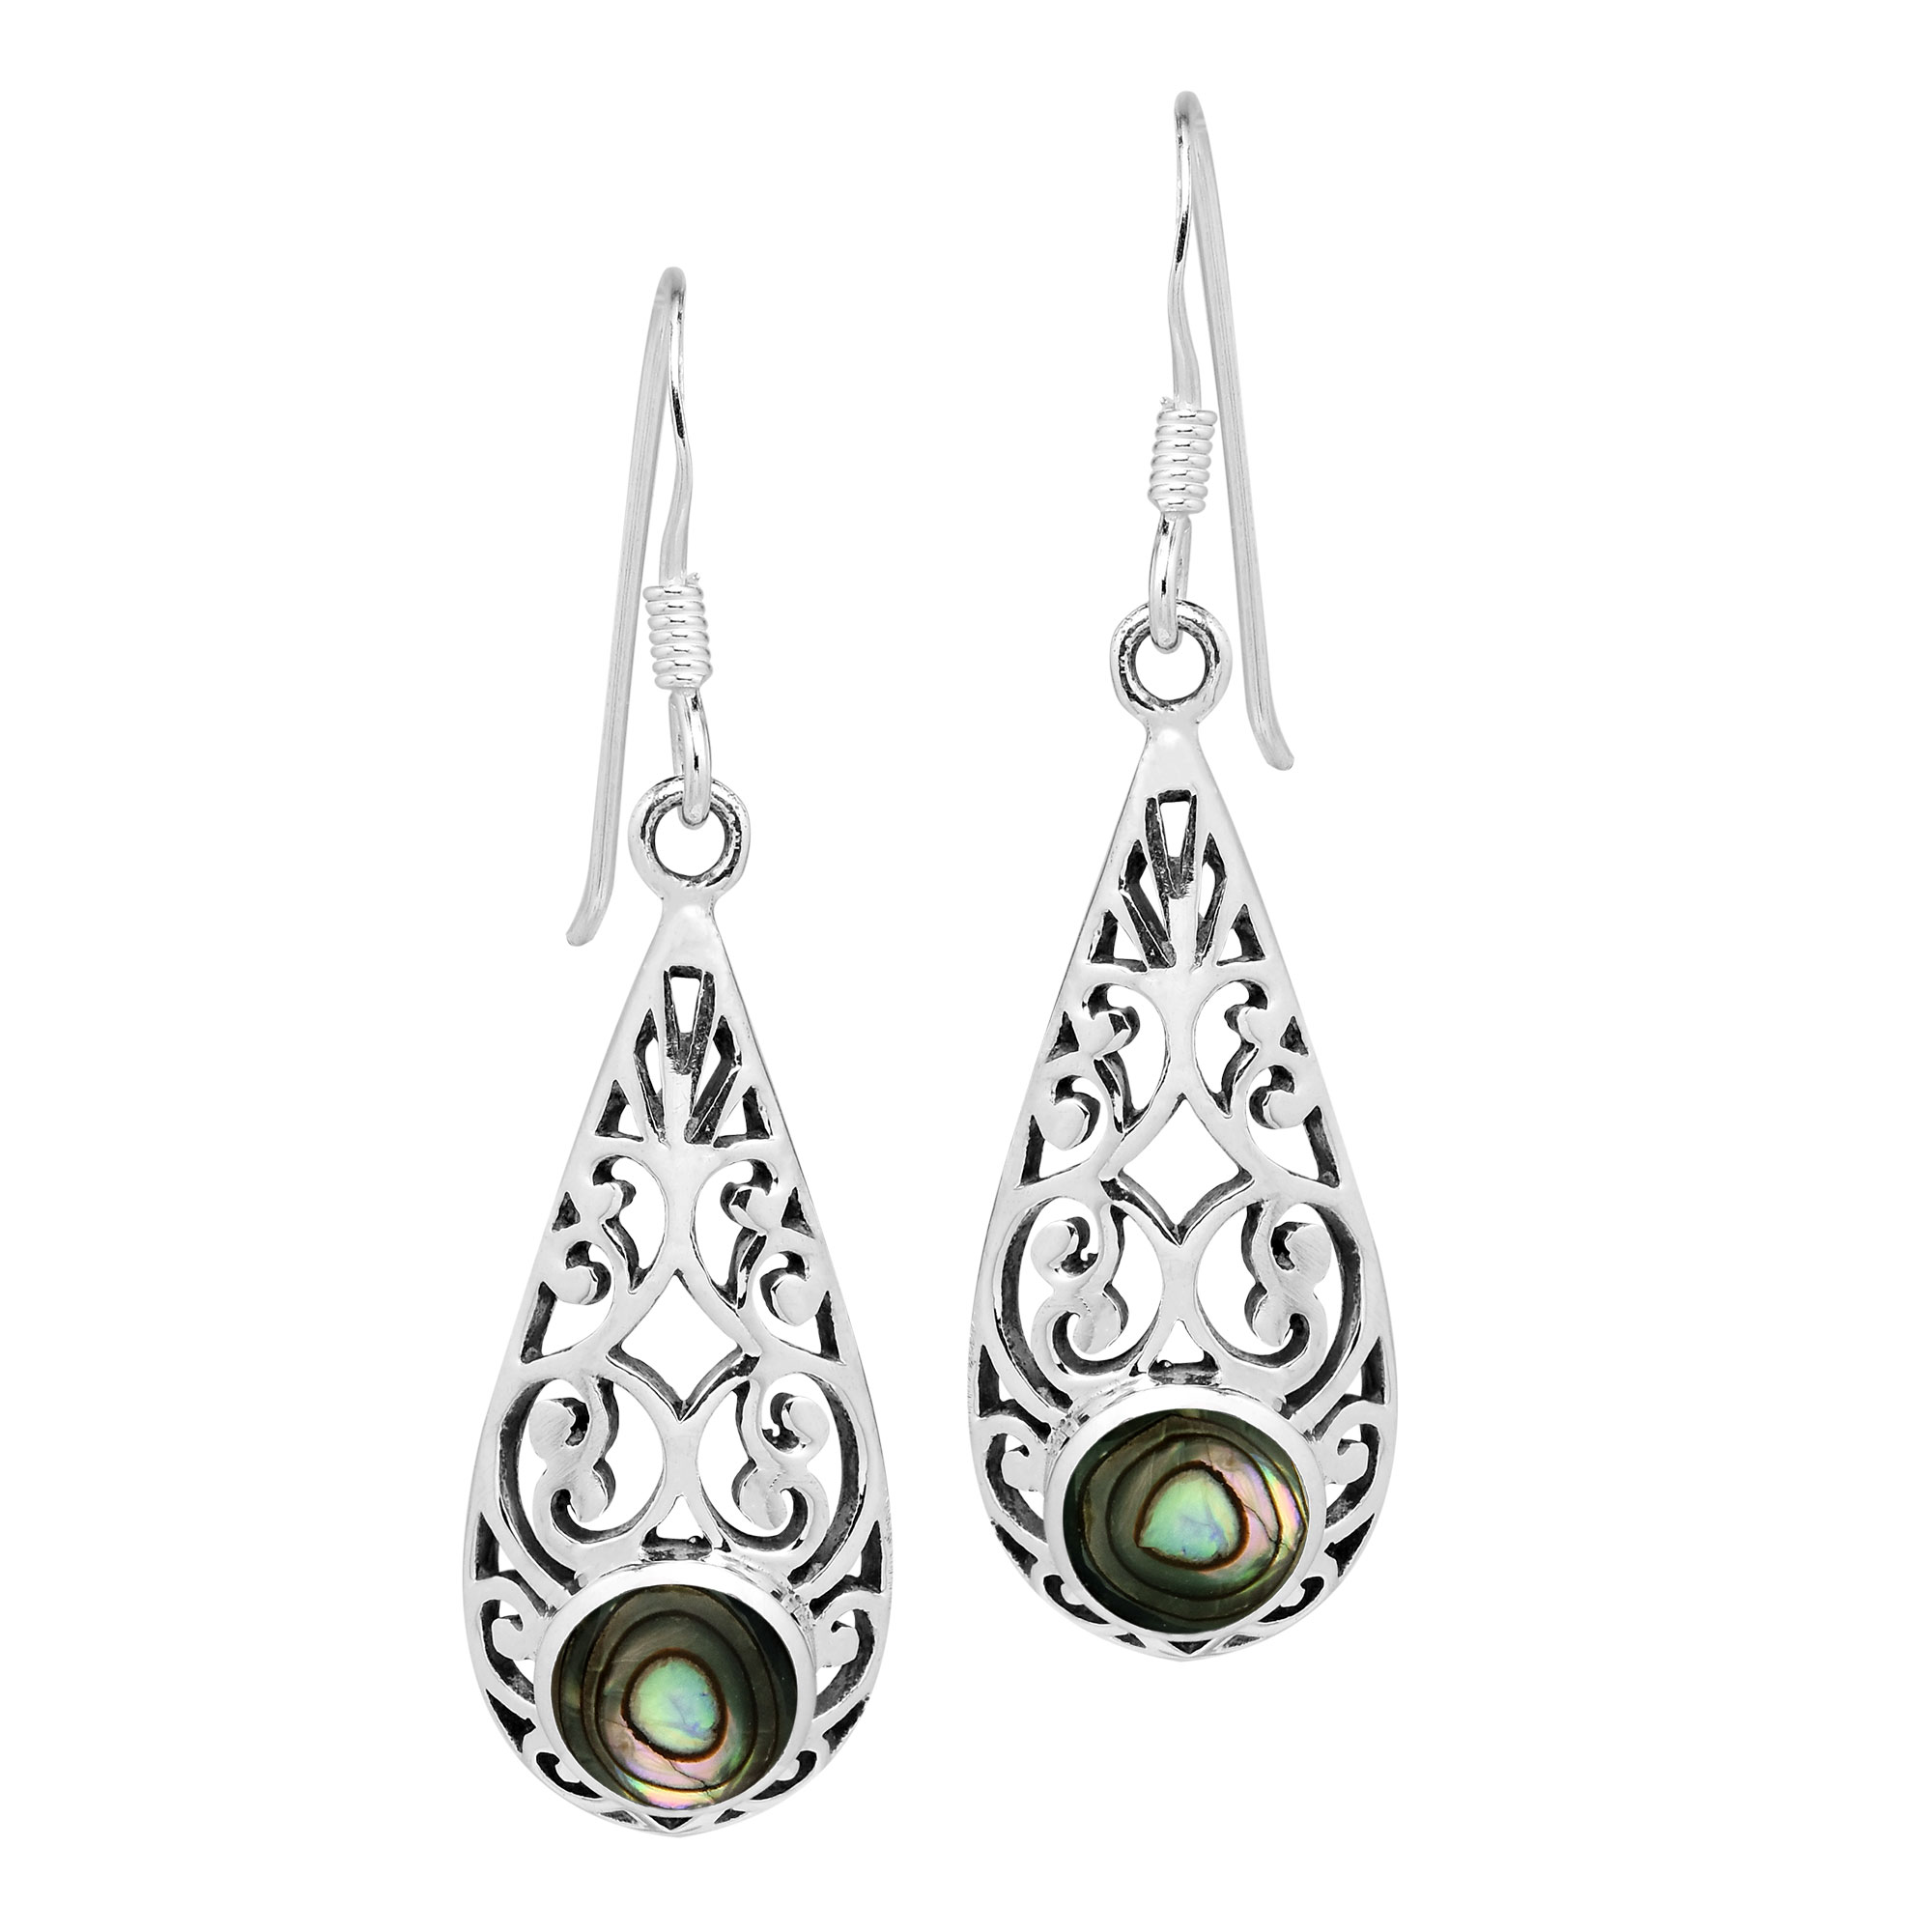 2118542d6 This elegant pair of dangle earrings features an intricate vine of sterling  silver that surrounds a vibrant teardrop shaped accent made from either  shell or ...